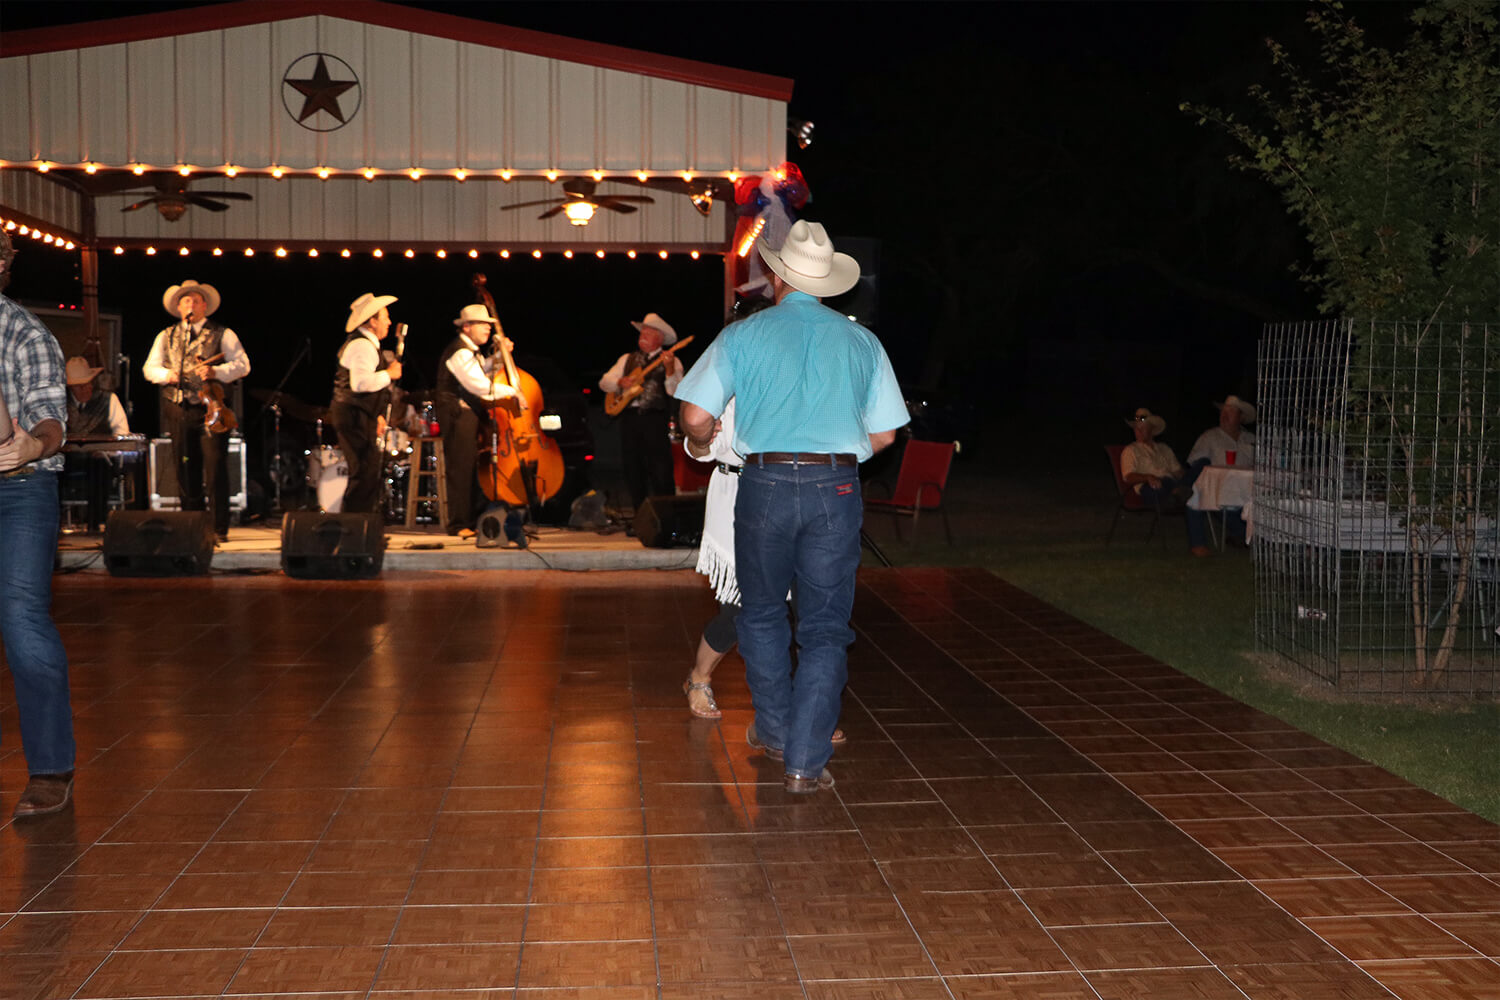 Teak dance floor with Oak border at this Western-themed dance event